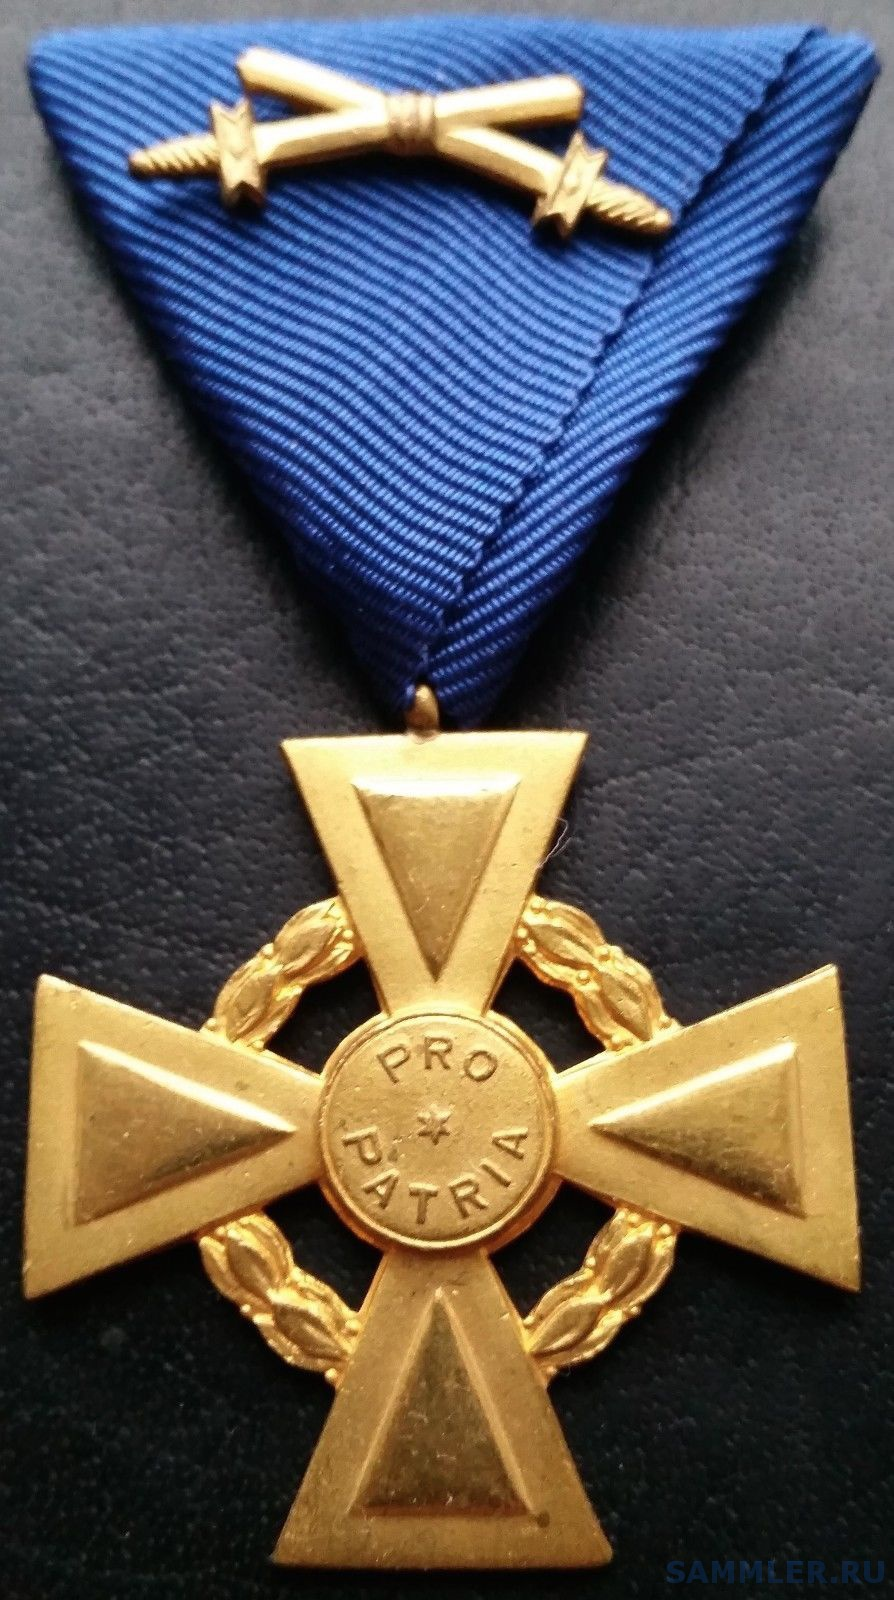 7332-Commemorative-Cross-of-the-Austrian-Legion-of-_57.jpg